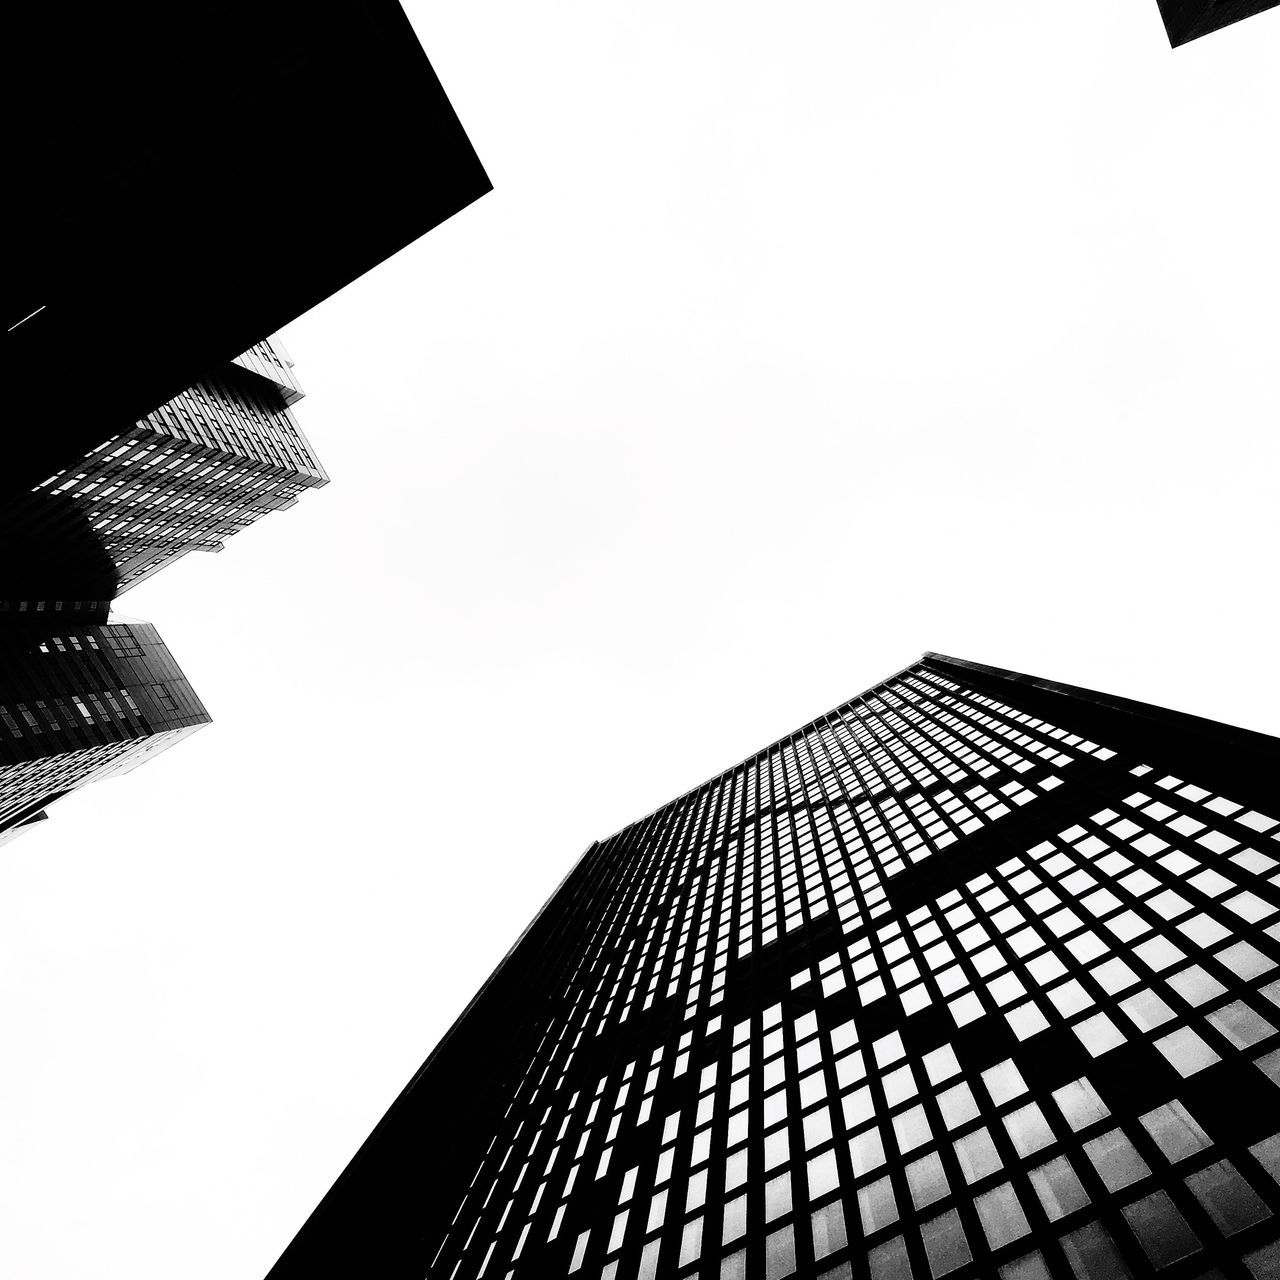 Monochrome Photography Architecture Low Angle View Tower Skyscraper Modern Office Building Building Exterior City Urban Geometry